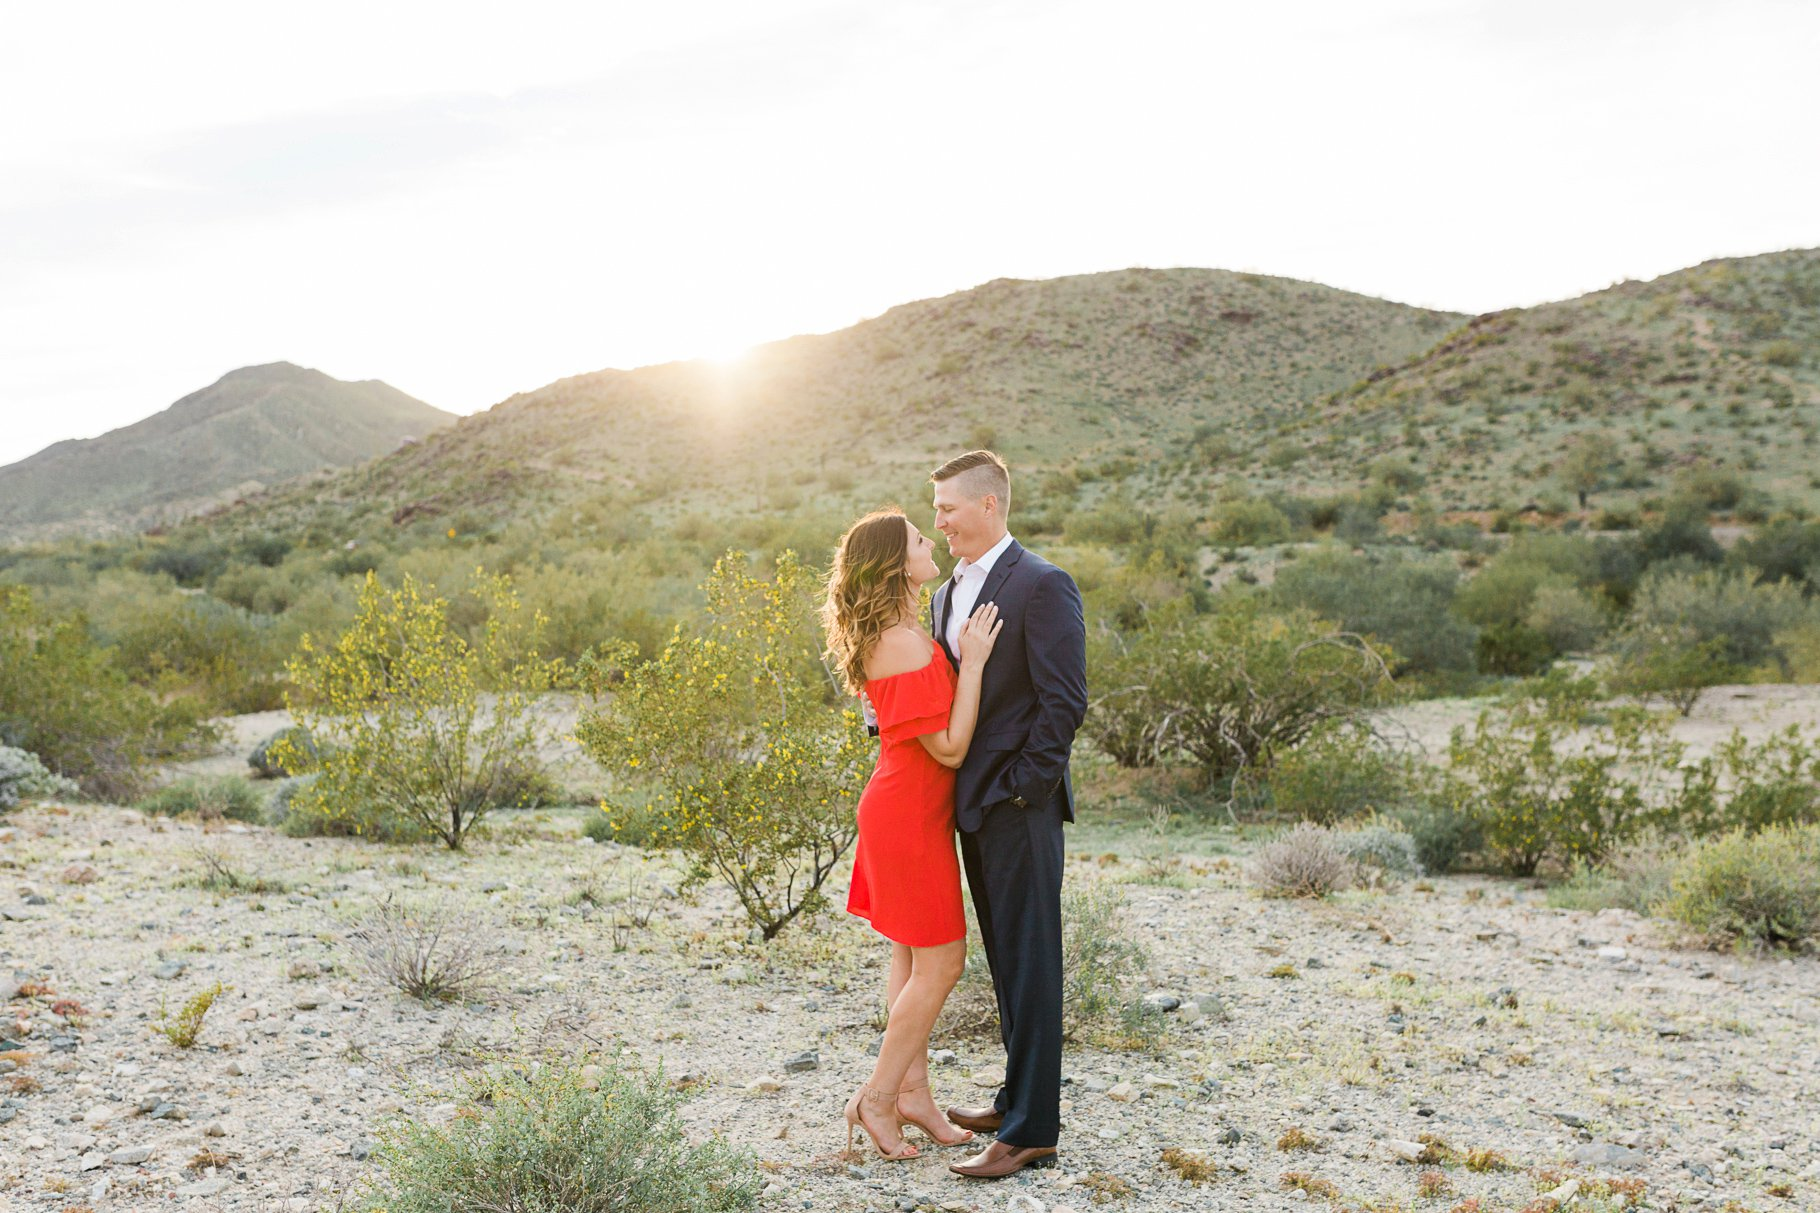 engagement session on South Mountain at sunset with girl in a red dress